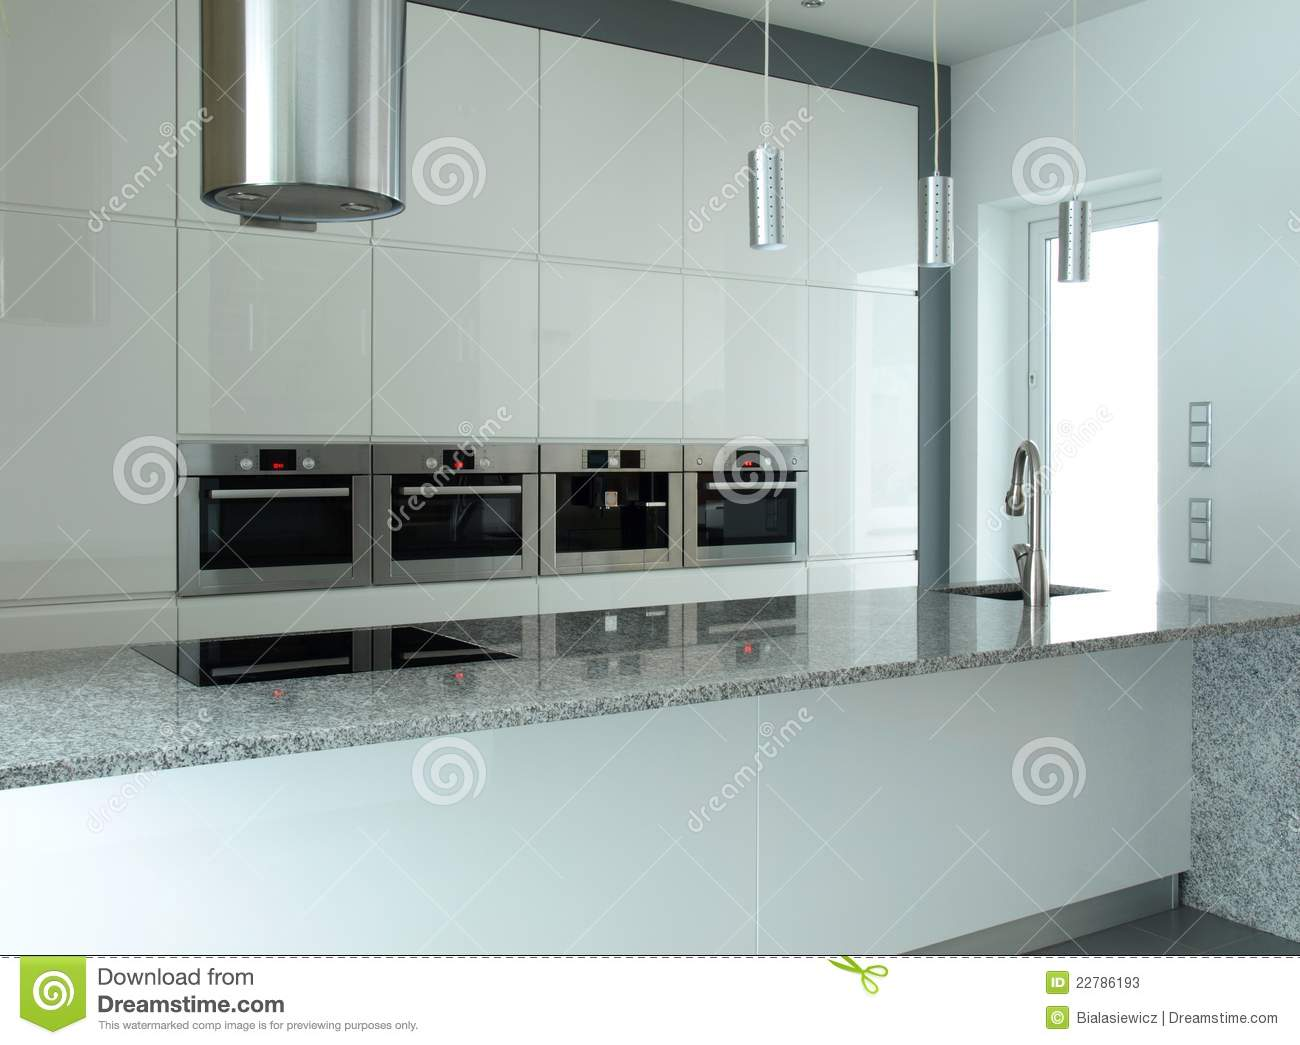 White Kitchen With Built-in Appliances Stock Image - Image of grey ...